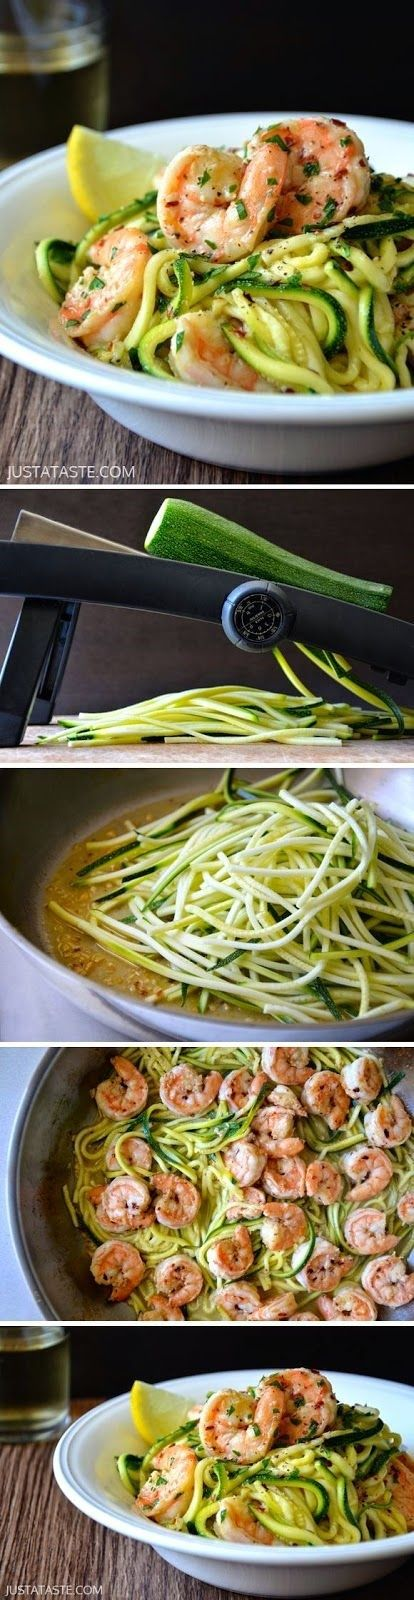 I love zucchini noodles and I love finding new and delicious ways to use them. These are my favorite finds from Pinterest – let me know if I missed your favorite below! Before you start, make sure to get your spiralizer here!   1. Baked Ziti Zoodles The healthy way with zucchini noodles, ground…Continue reading ➞ The BEST  Collection of Zoodle Recipes